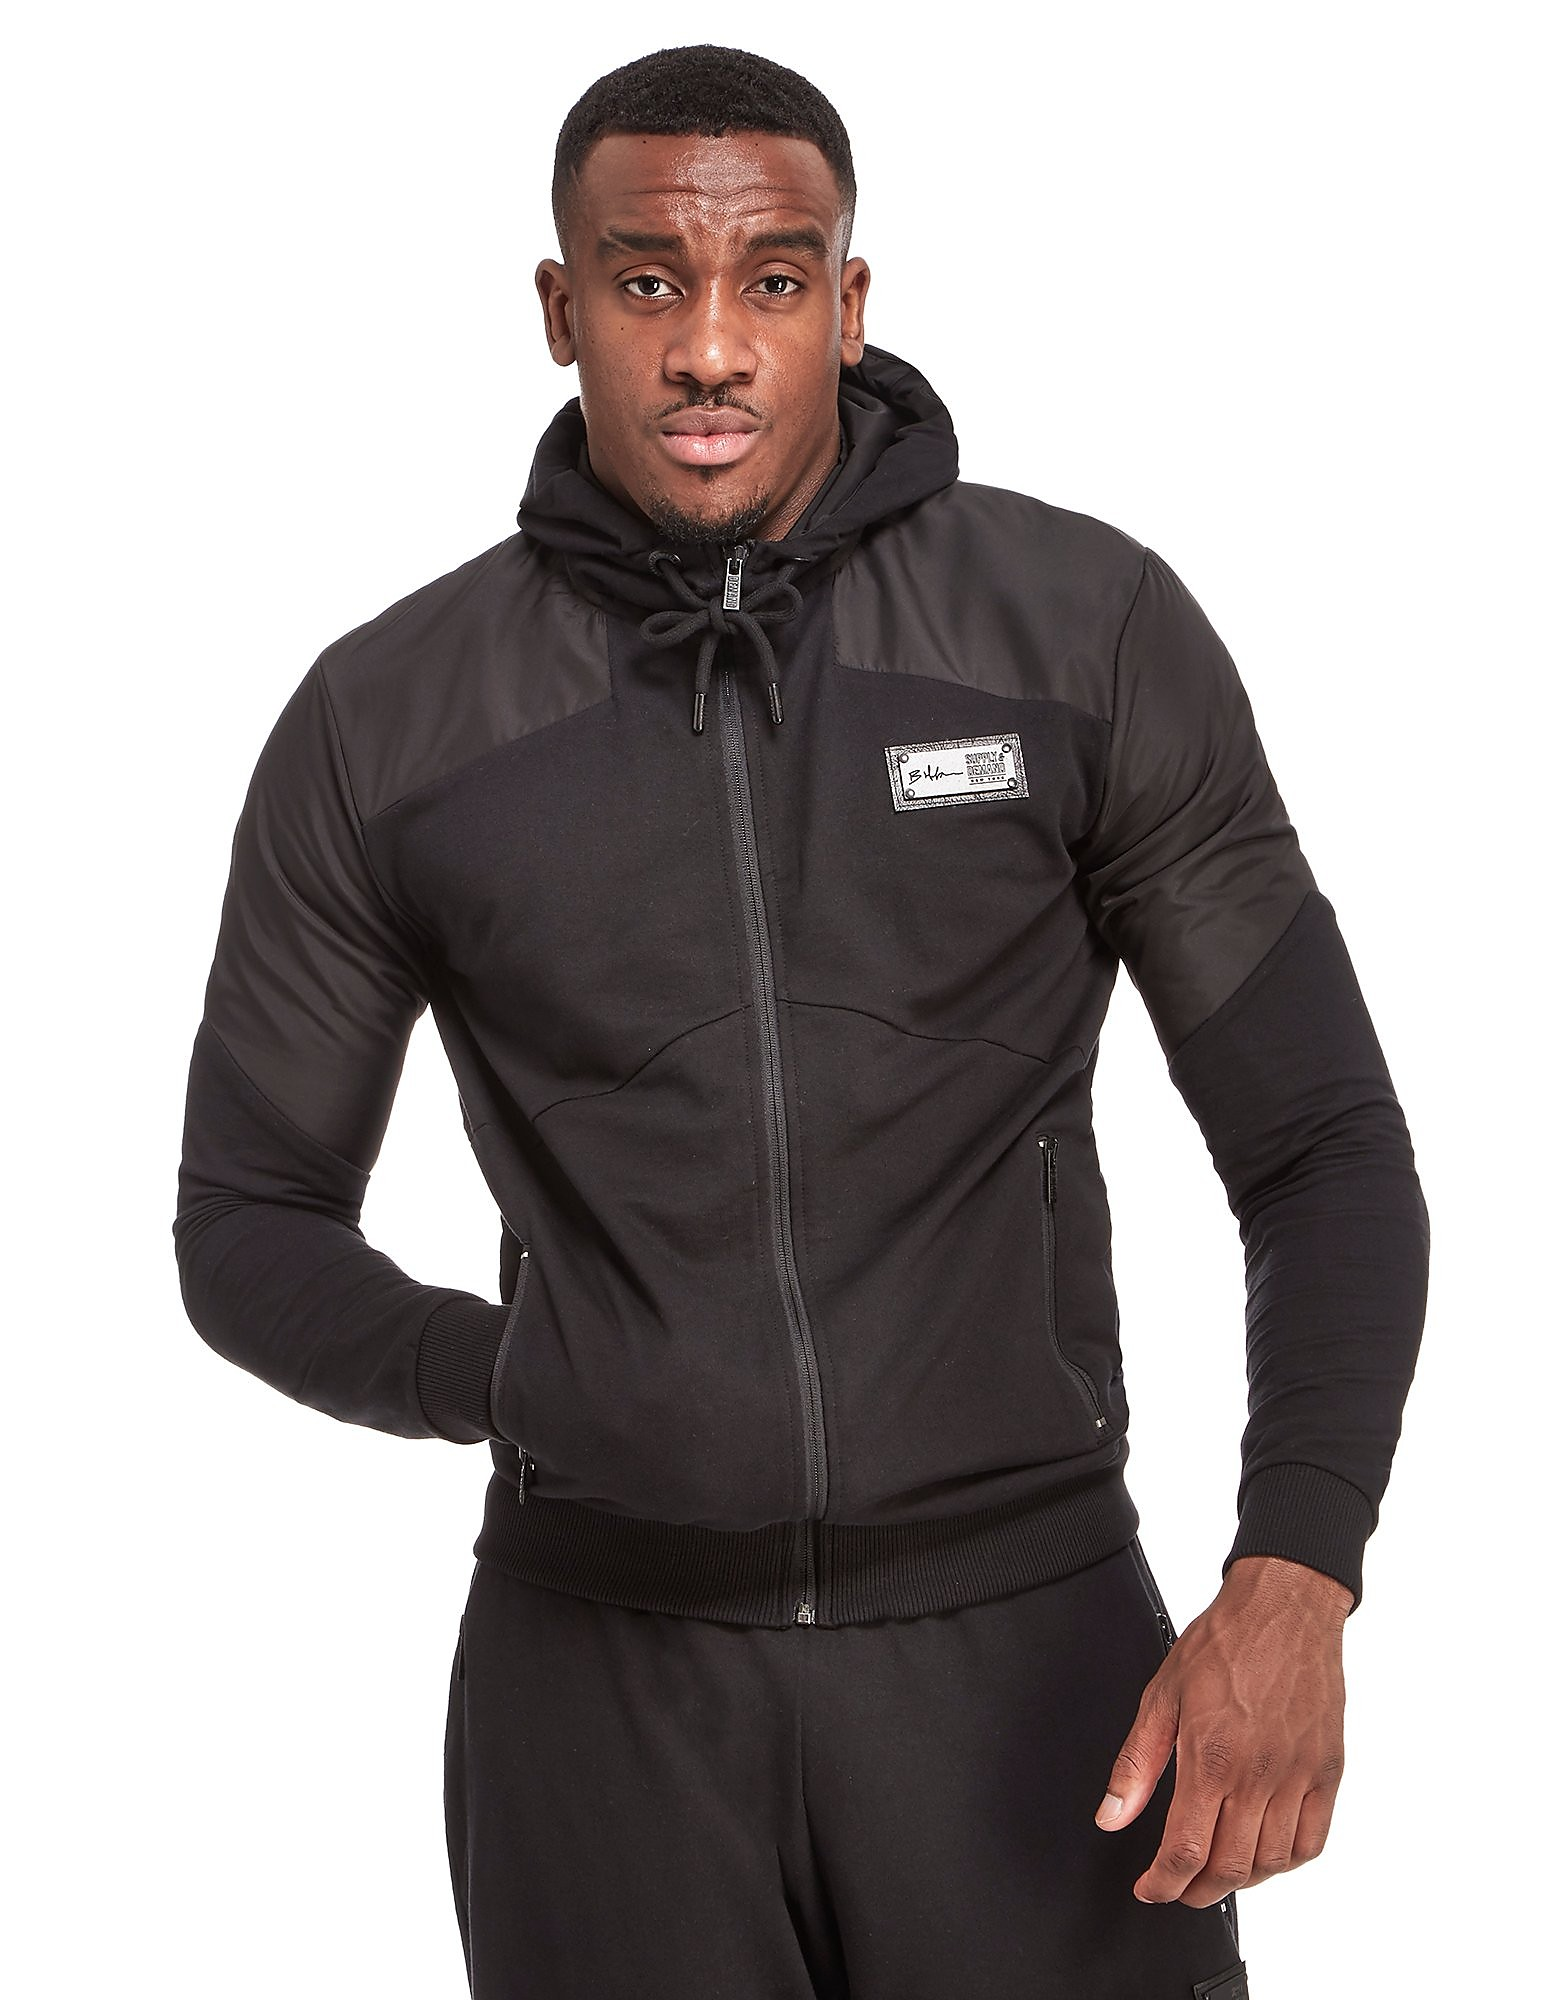 Supply & Demand x Bugzy Malone Groggy Hoody PRE-ORDER